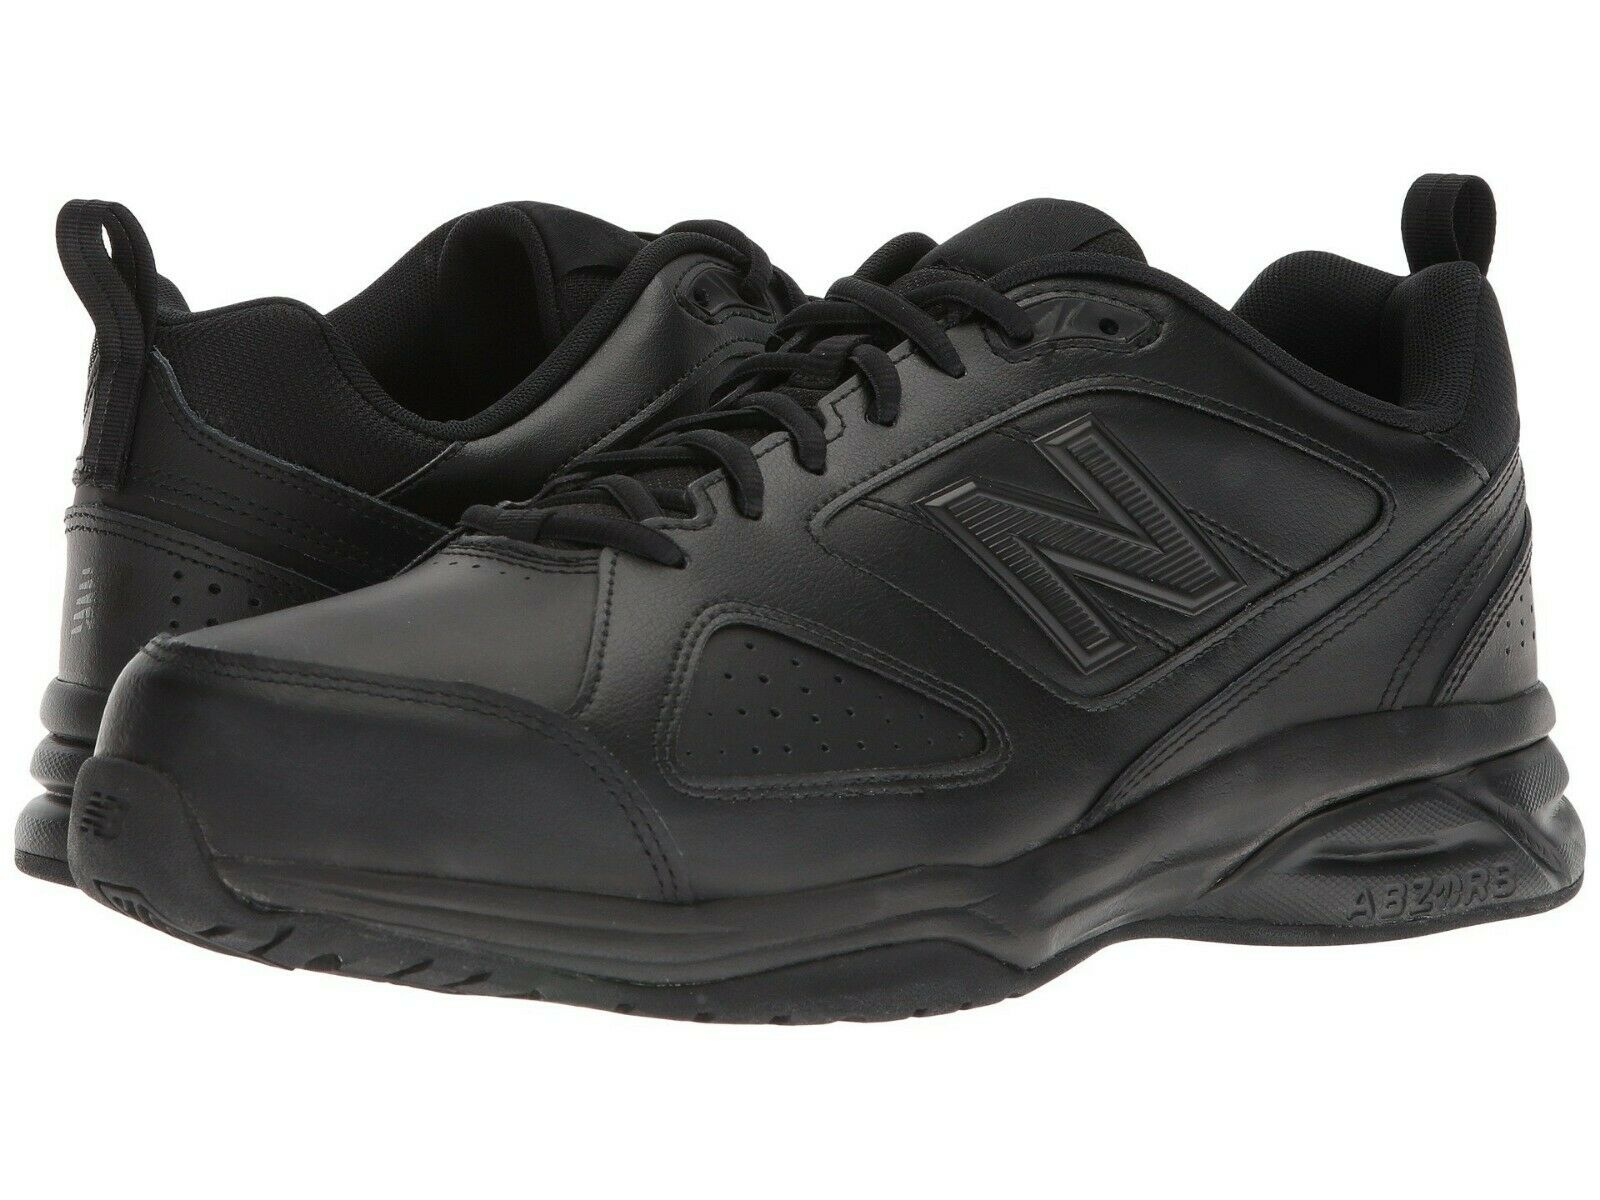 NEW Mens New Balance 623v3 Black Leather Athletic Cross Training shoes AUTHENTIC